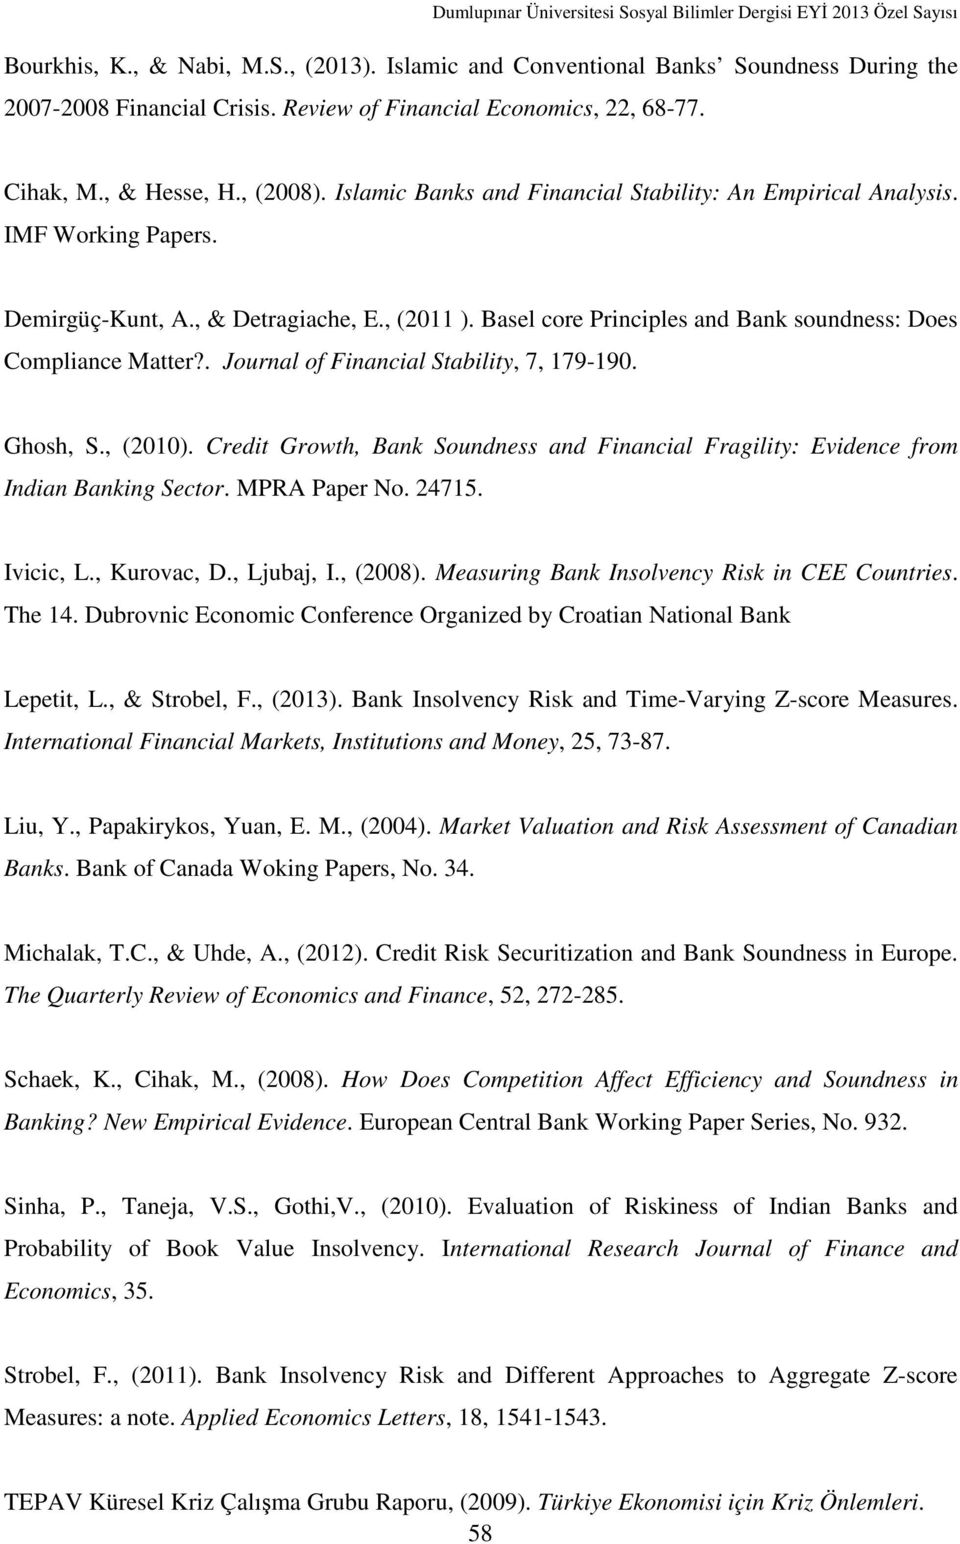 . Journal of Financial Stability, 7, 179-190. Ghosh, S., (2010). Credit Growth, Bank Soundness and Financial Fragility: Evidence from Indian Banking Sector. MPRA Paper No. 24715. Ivicic, L.